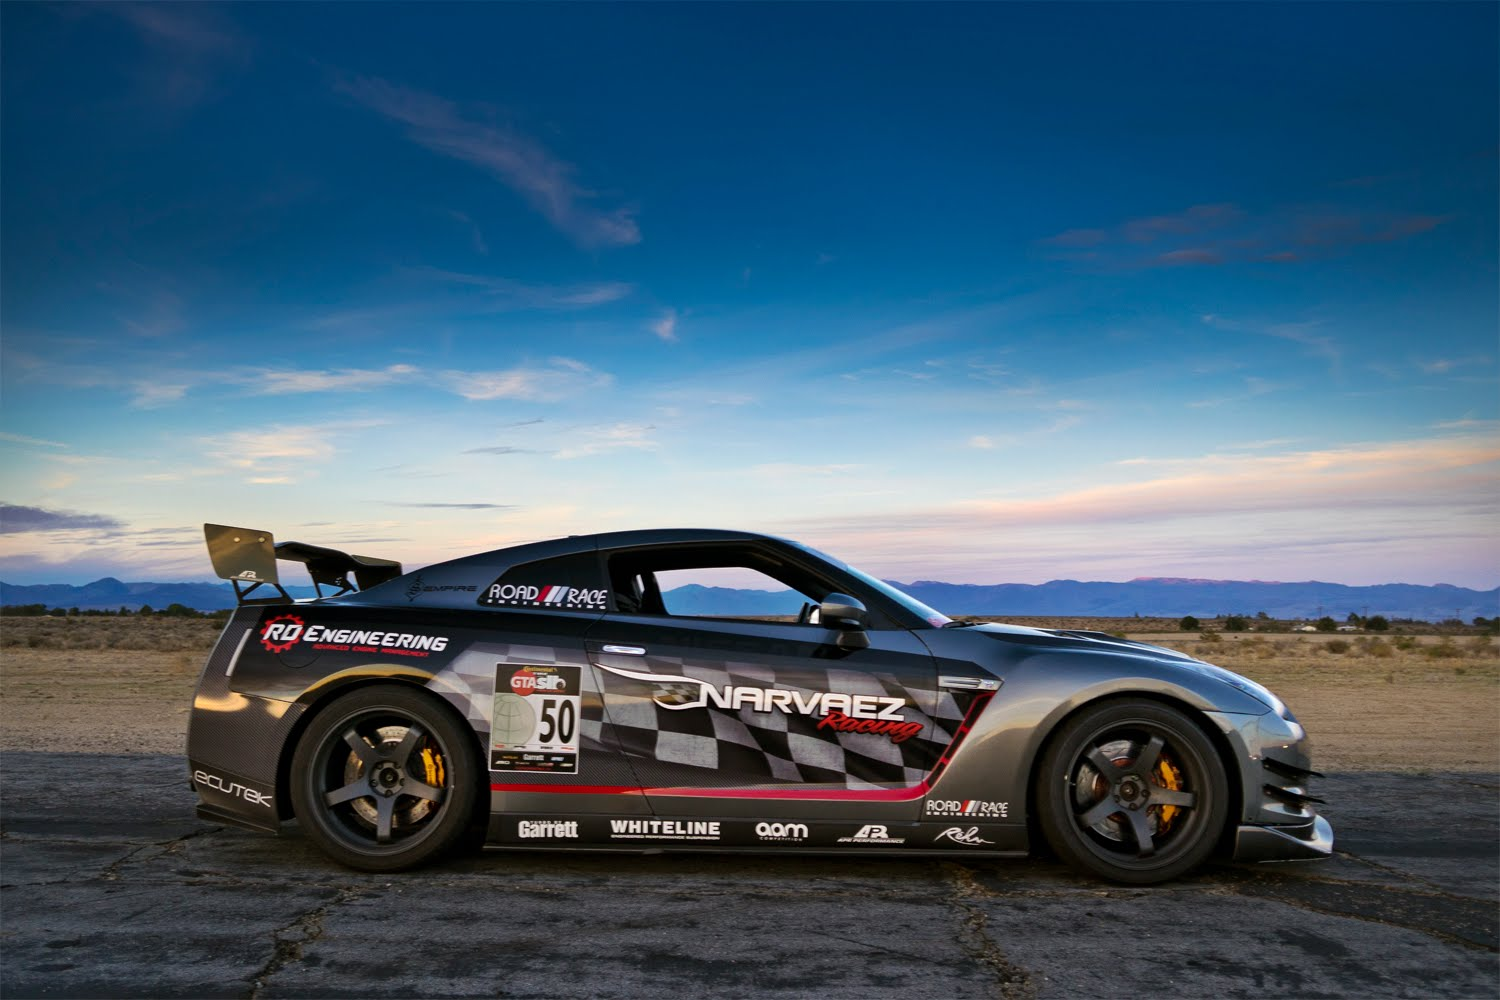 Check Out Some Awesome Tuner Cars And A Nissan Gtr Challenge To Top